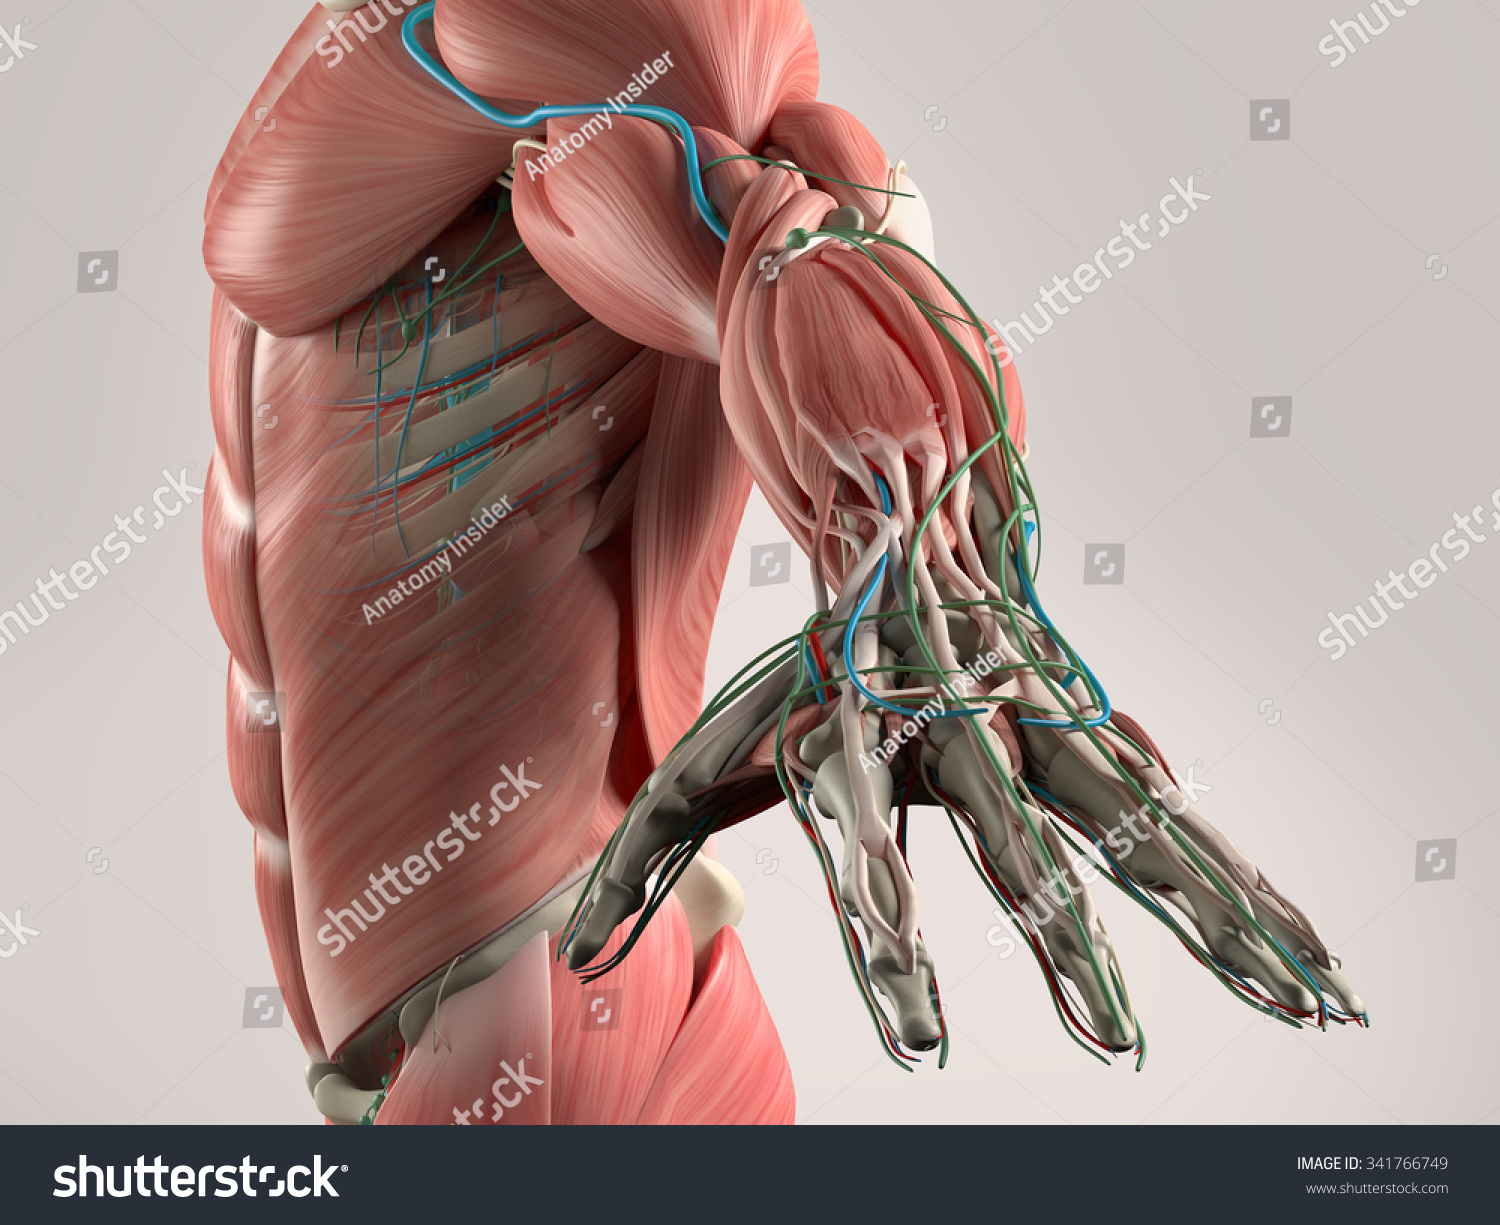 Human Anatomy View Torso Arm Showing Stock Illustration 341766749 ...